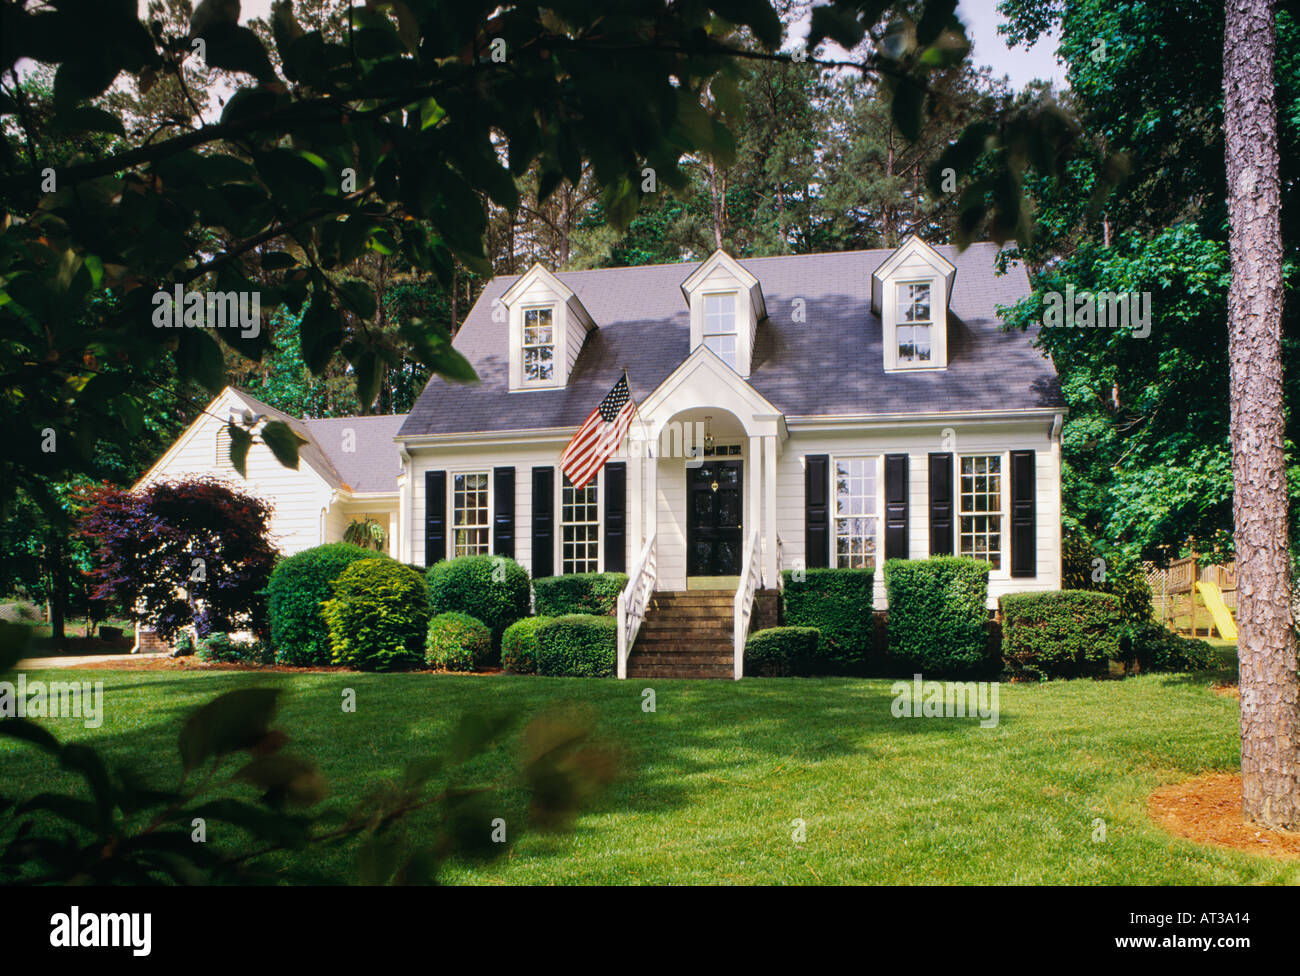 small white house with dormers black trim and an american flag stock photo royalty free image. Black Bedroom Furniture Sets. Home Design Ideas